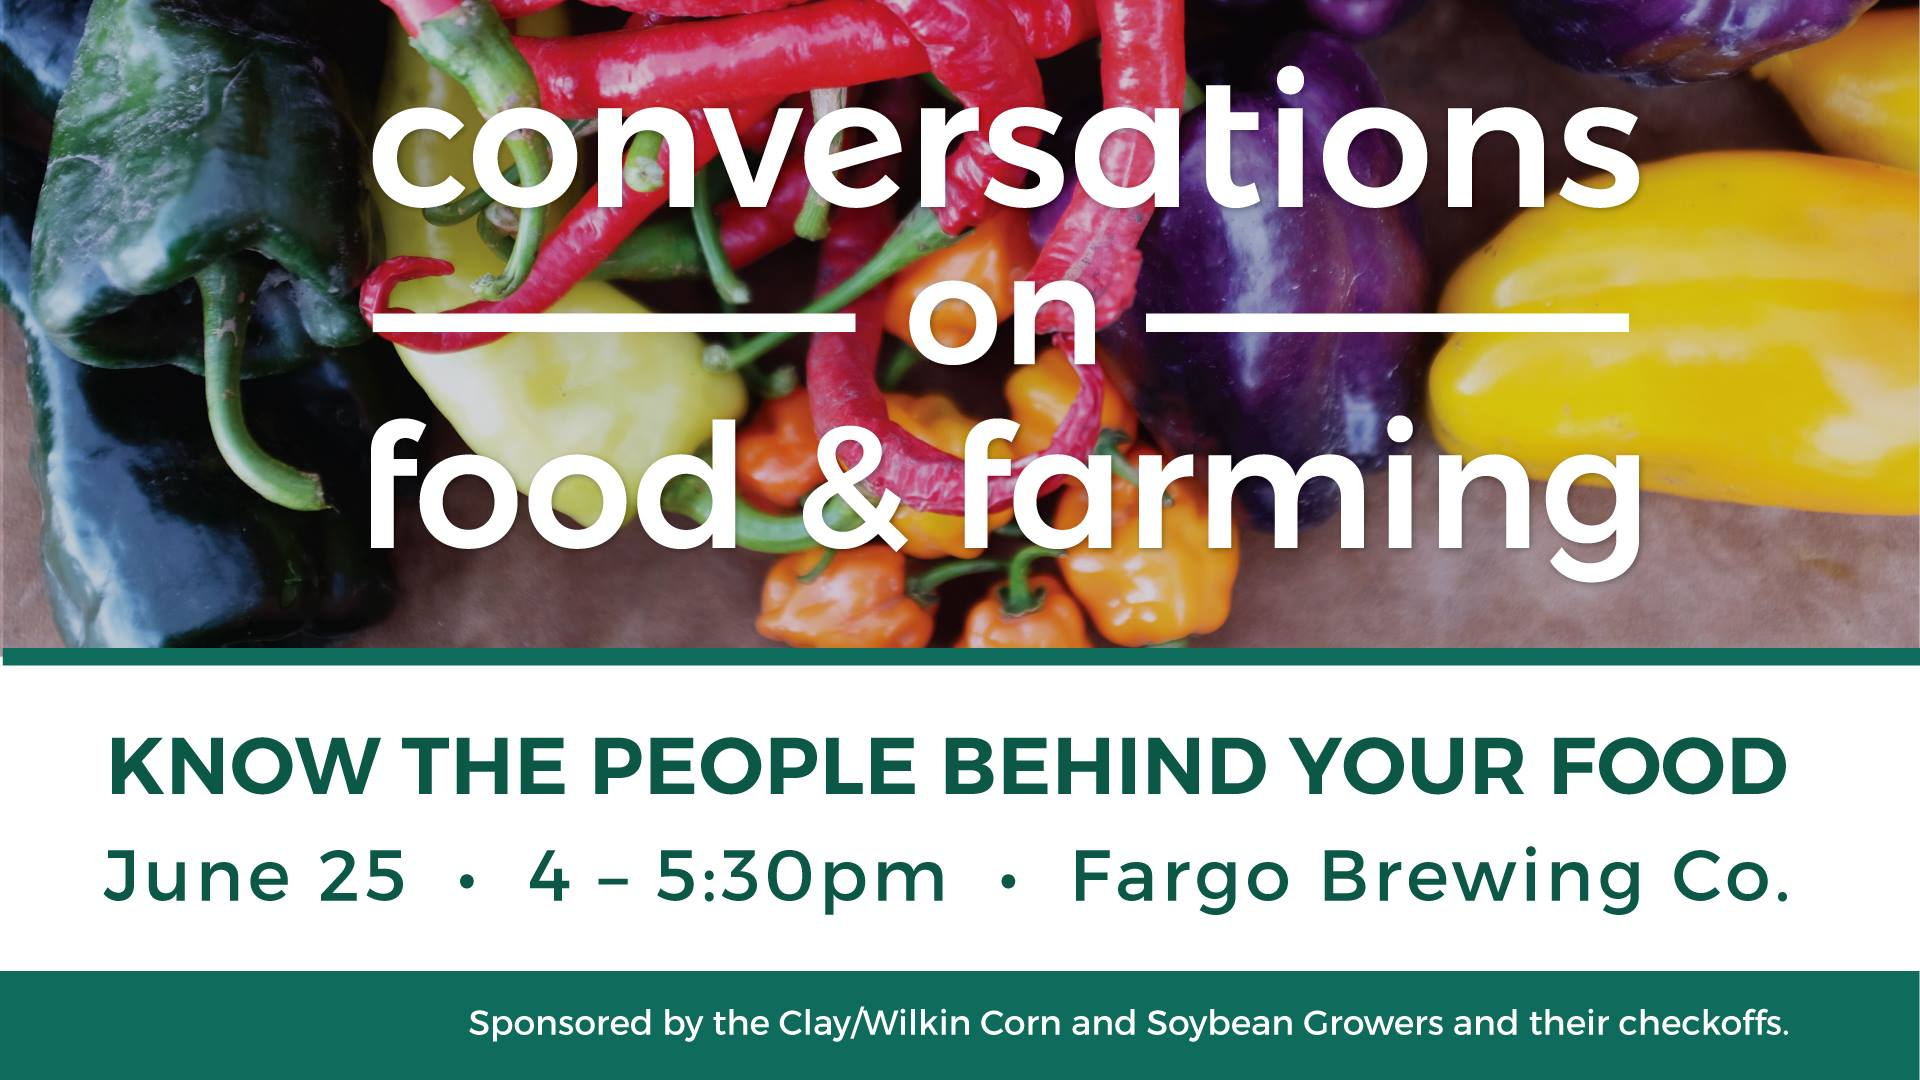 June 2017 -  Conversations on Food and Farming  co-hosted by the  ClayWilkin Corn and Soybean Growers Association  at Fargo Brewing Company